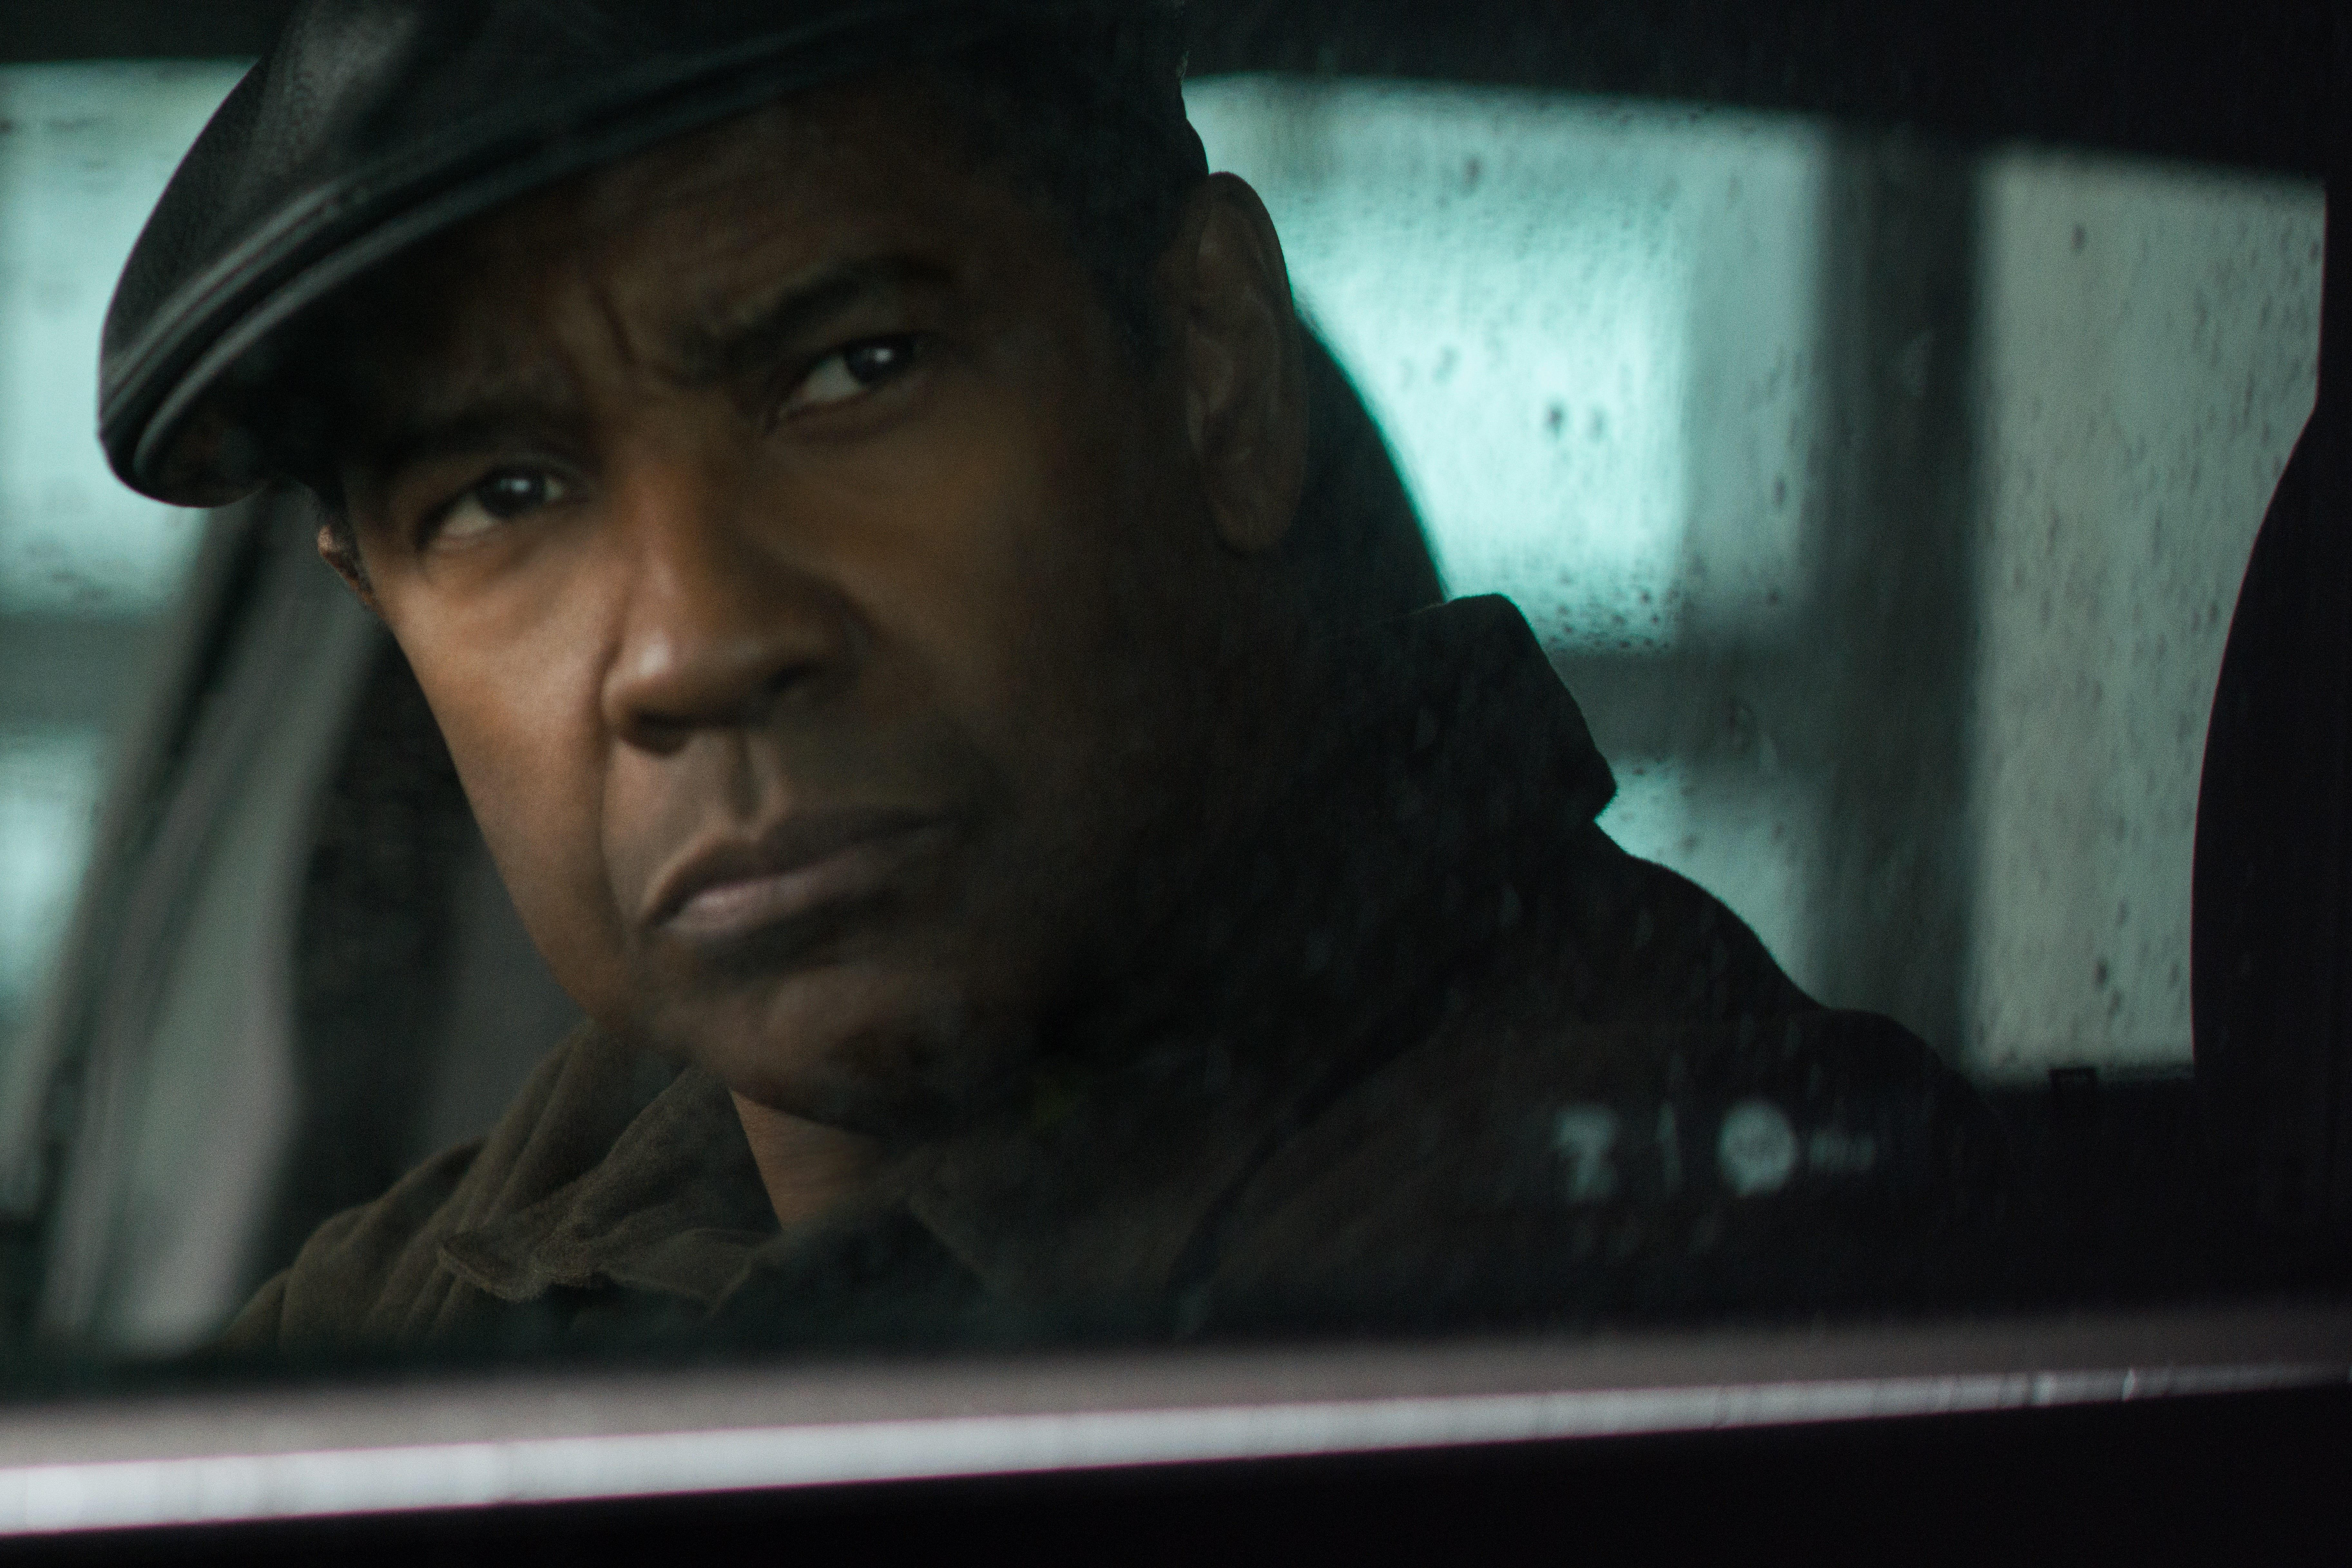 The great equalizer 2 - 2018 film 6